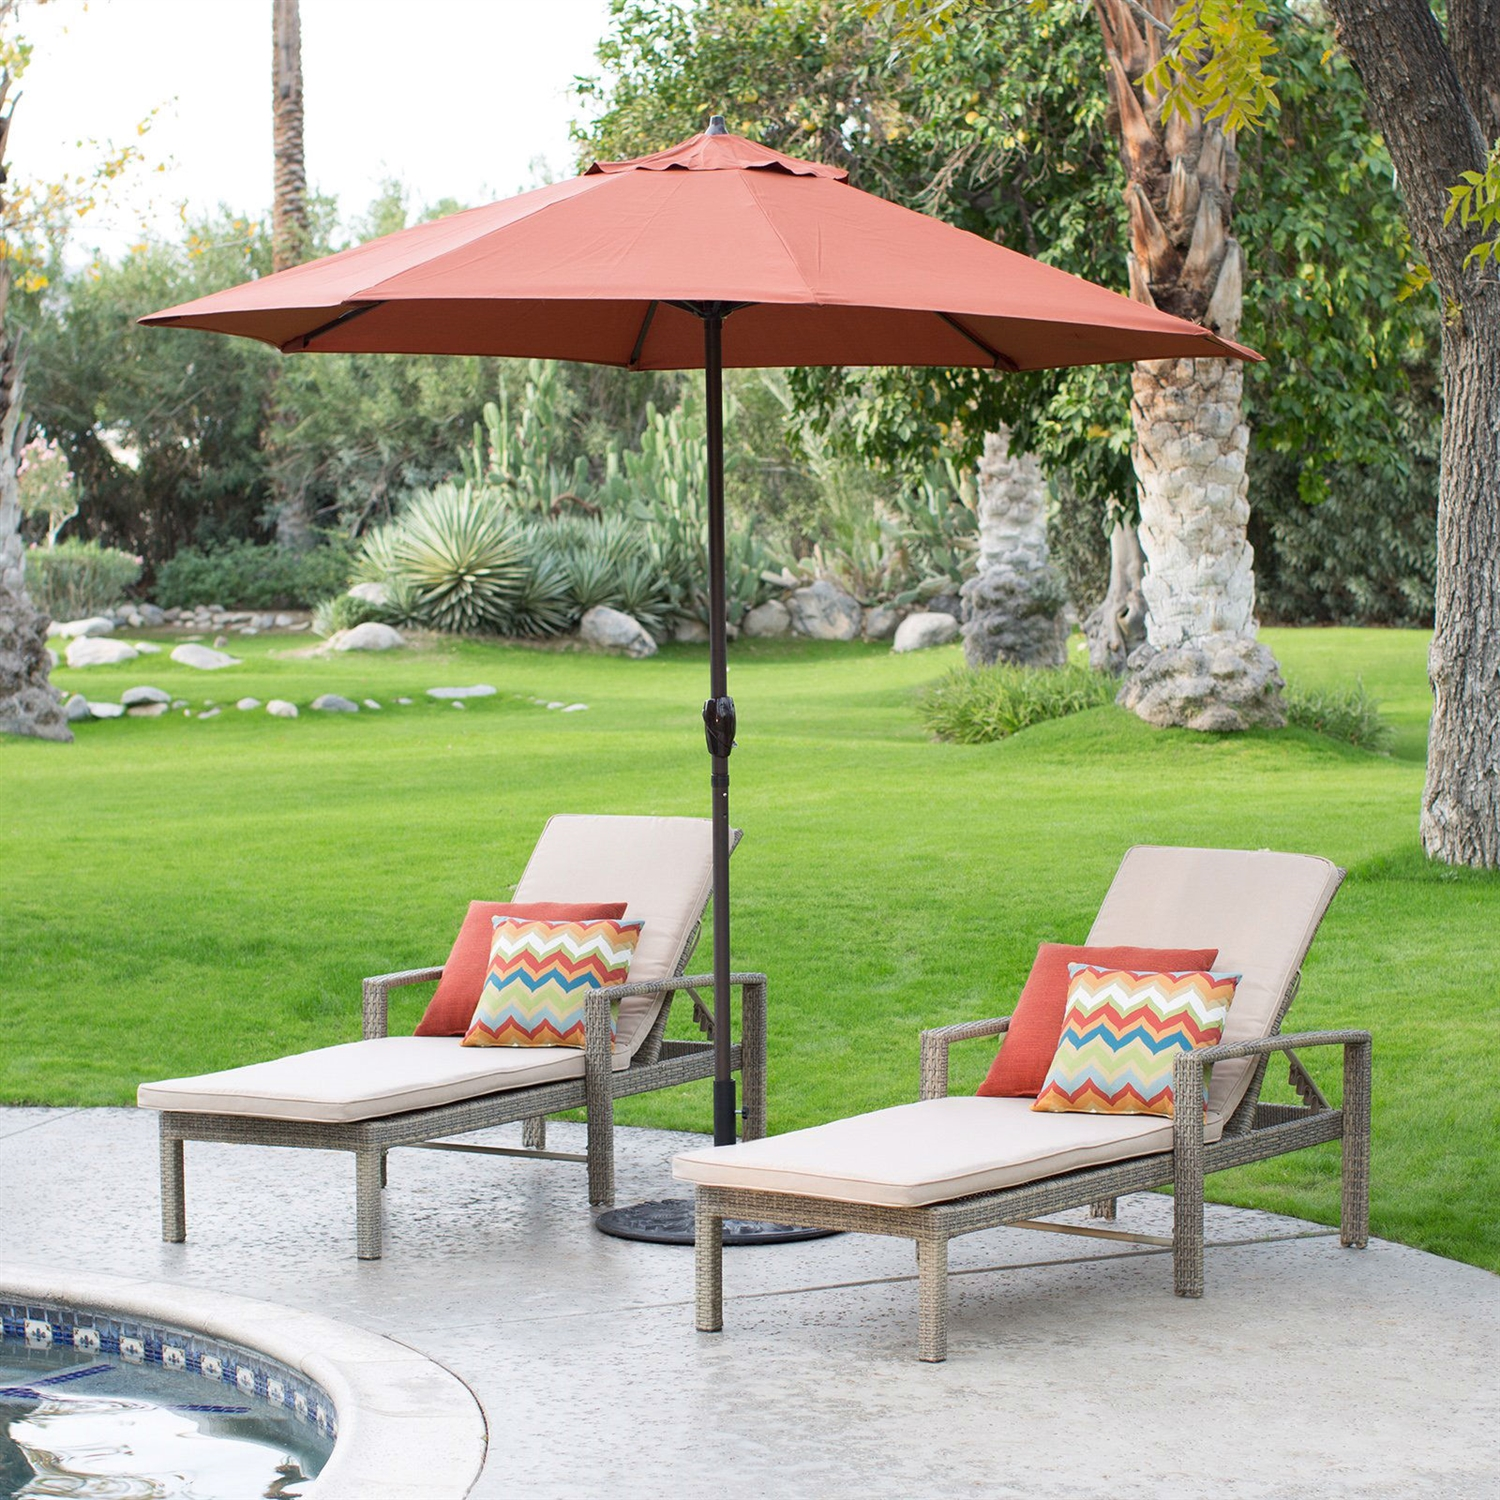 9 Ft Patio Umbrella in Terracotta with Metal Pole and Tilt